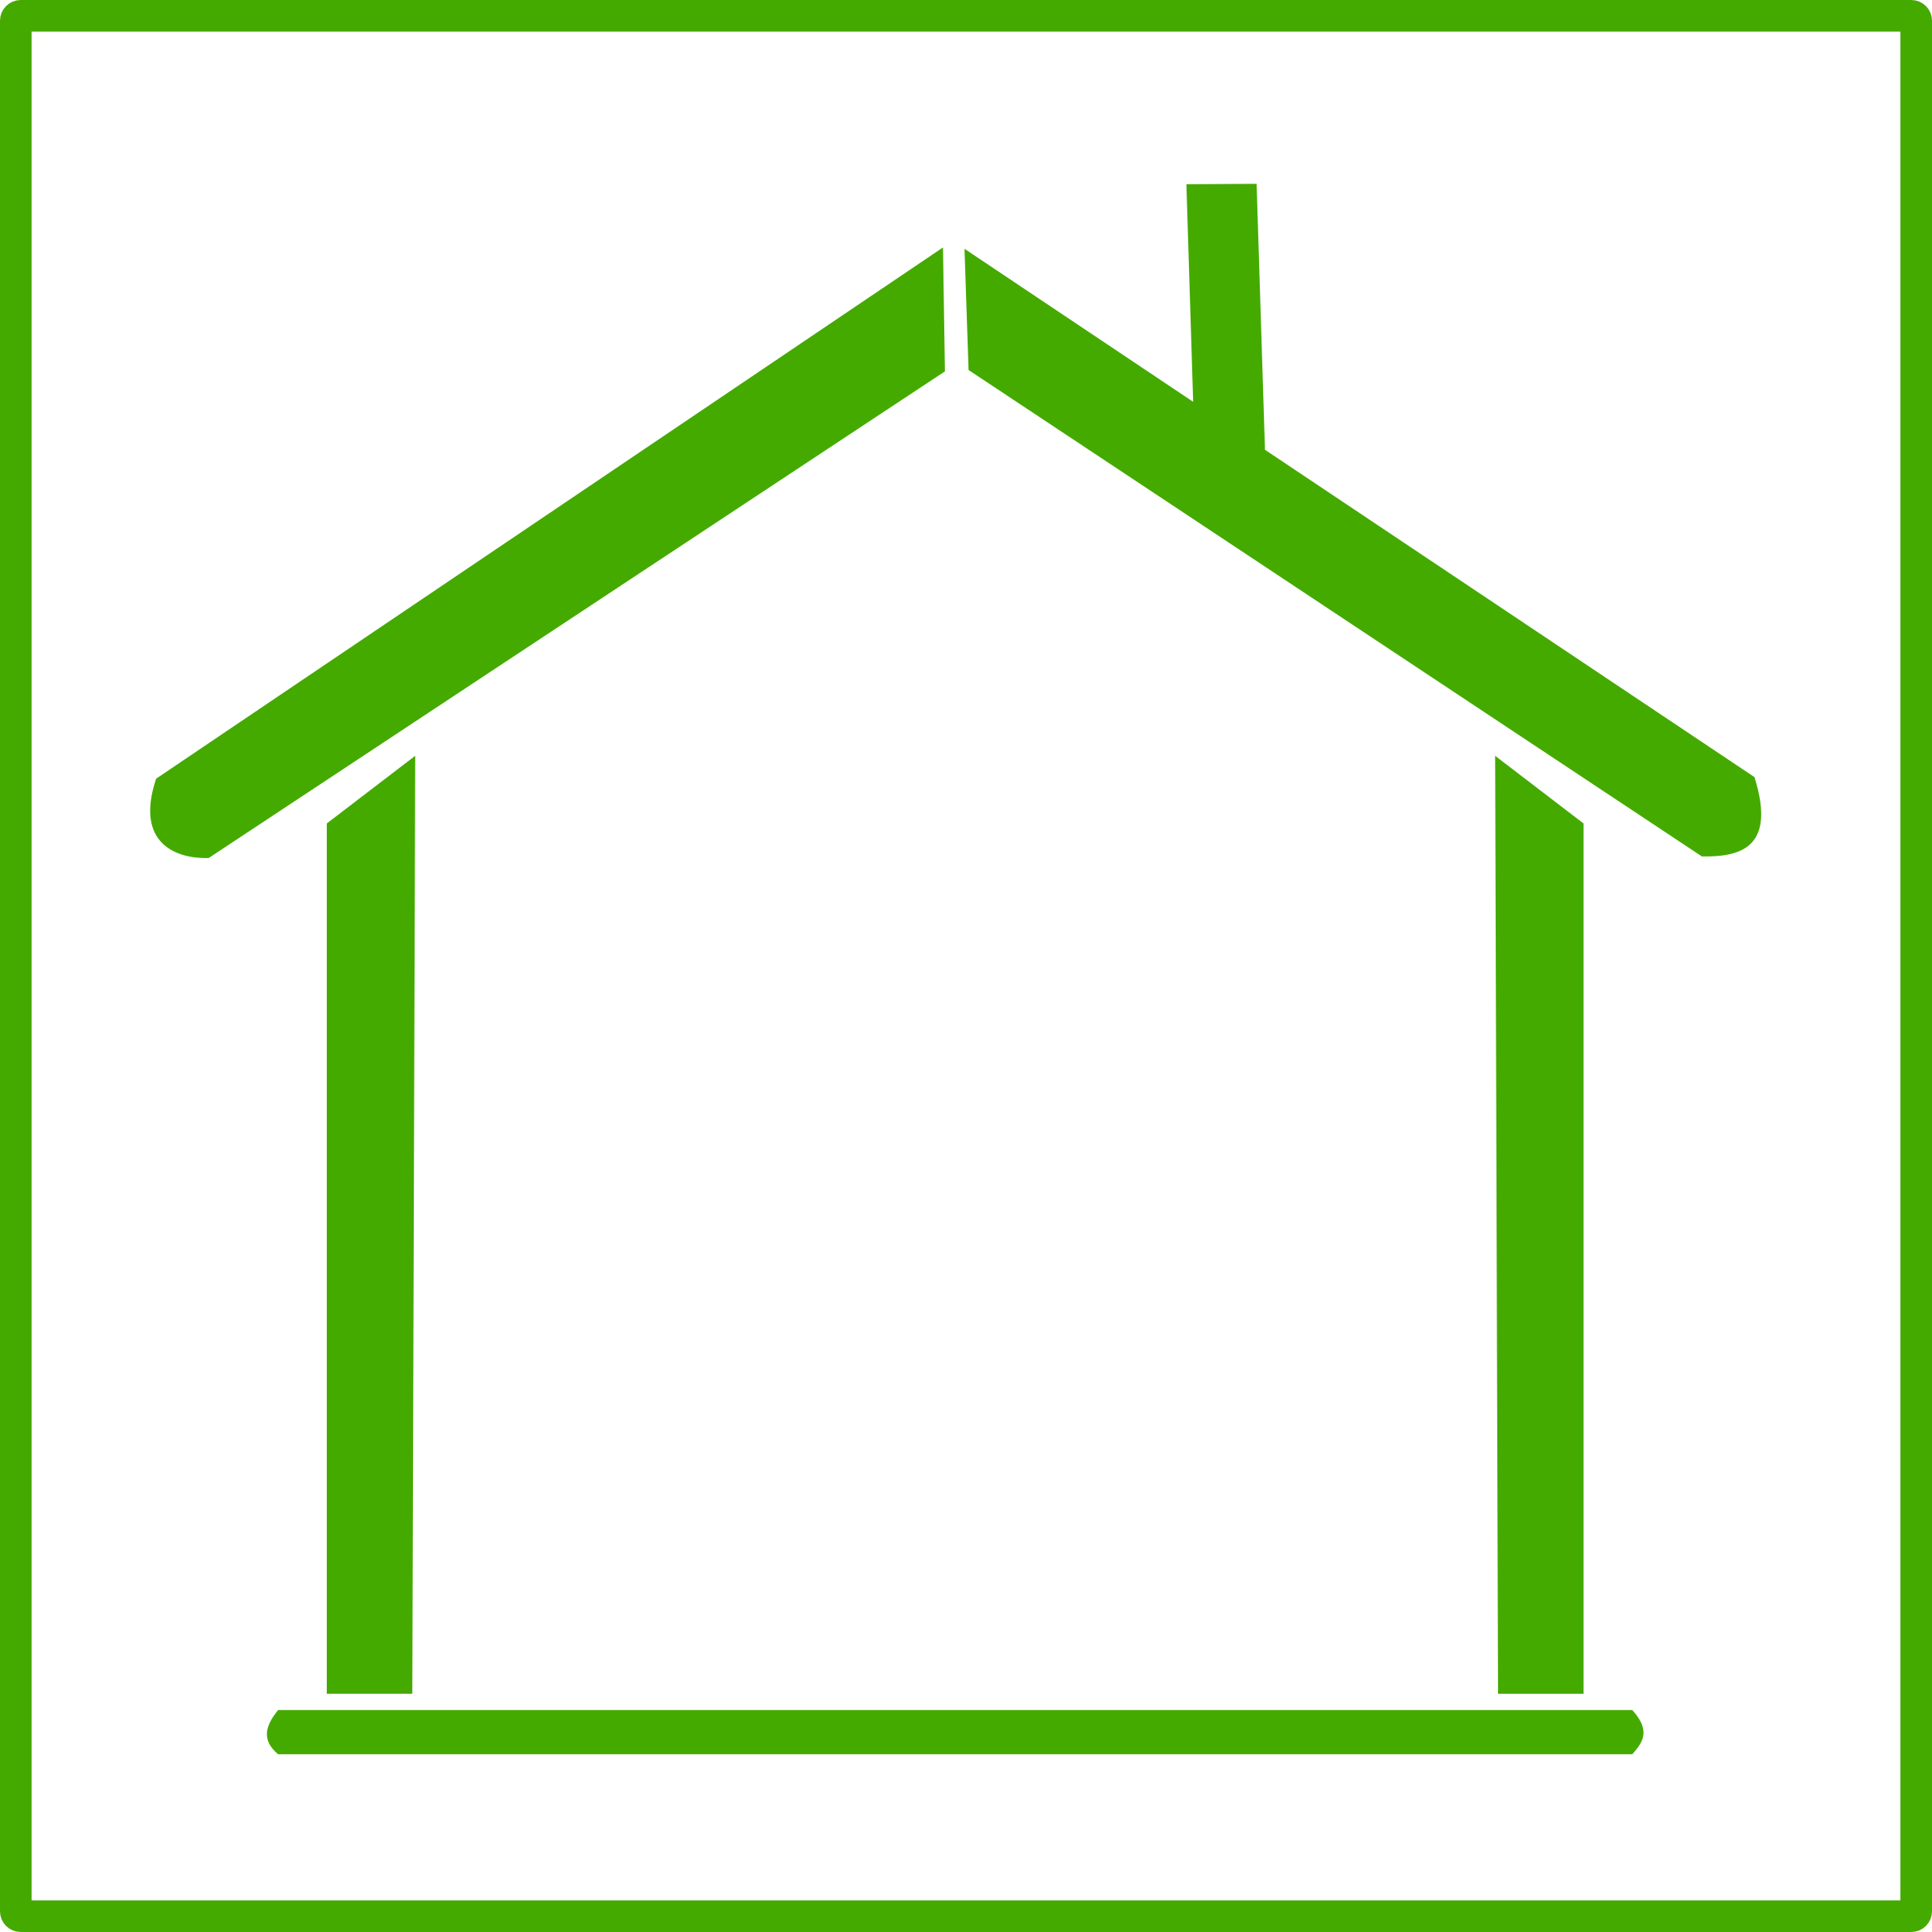 Roof of house clipart clipart free Pretty Roof Clipart House Roof Outline Clip Art 2017 2018 Best ... clipart free